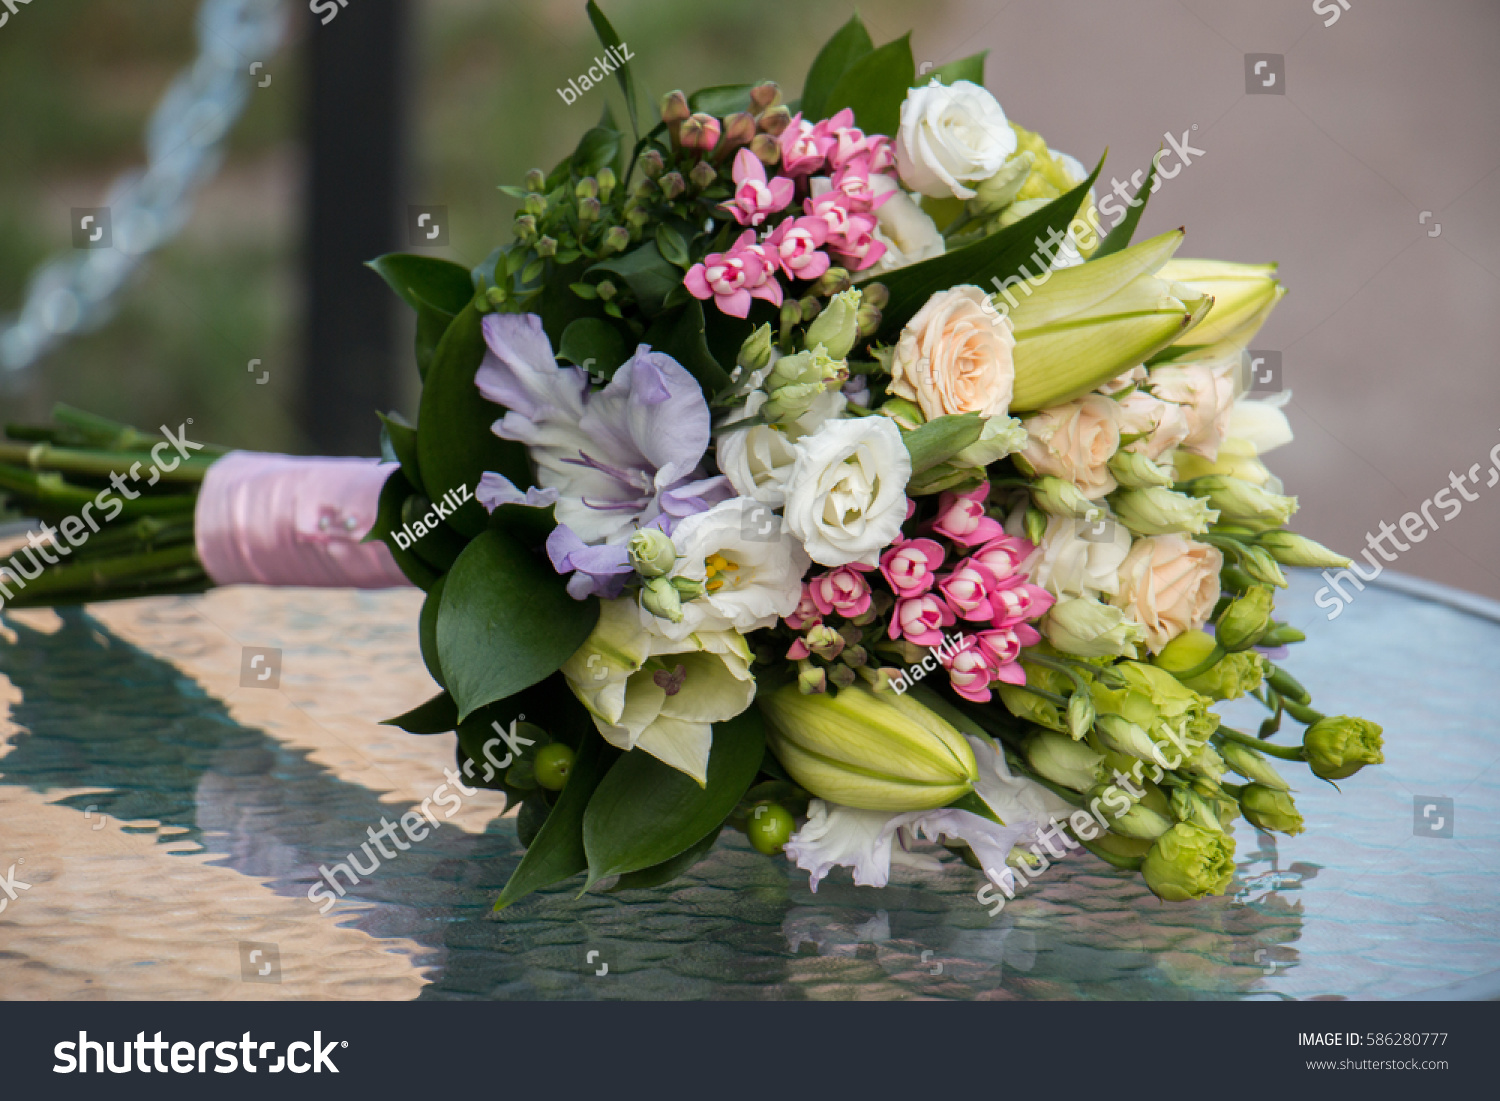 Wedding bouquet of lily flowers on glass table ez canvas id 586280777 izmirmasajfo